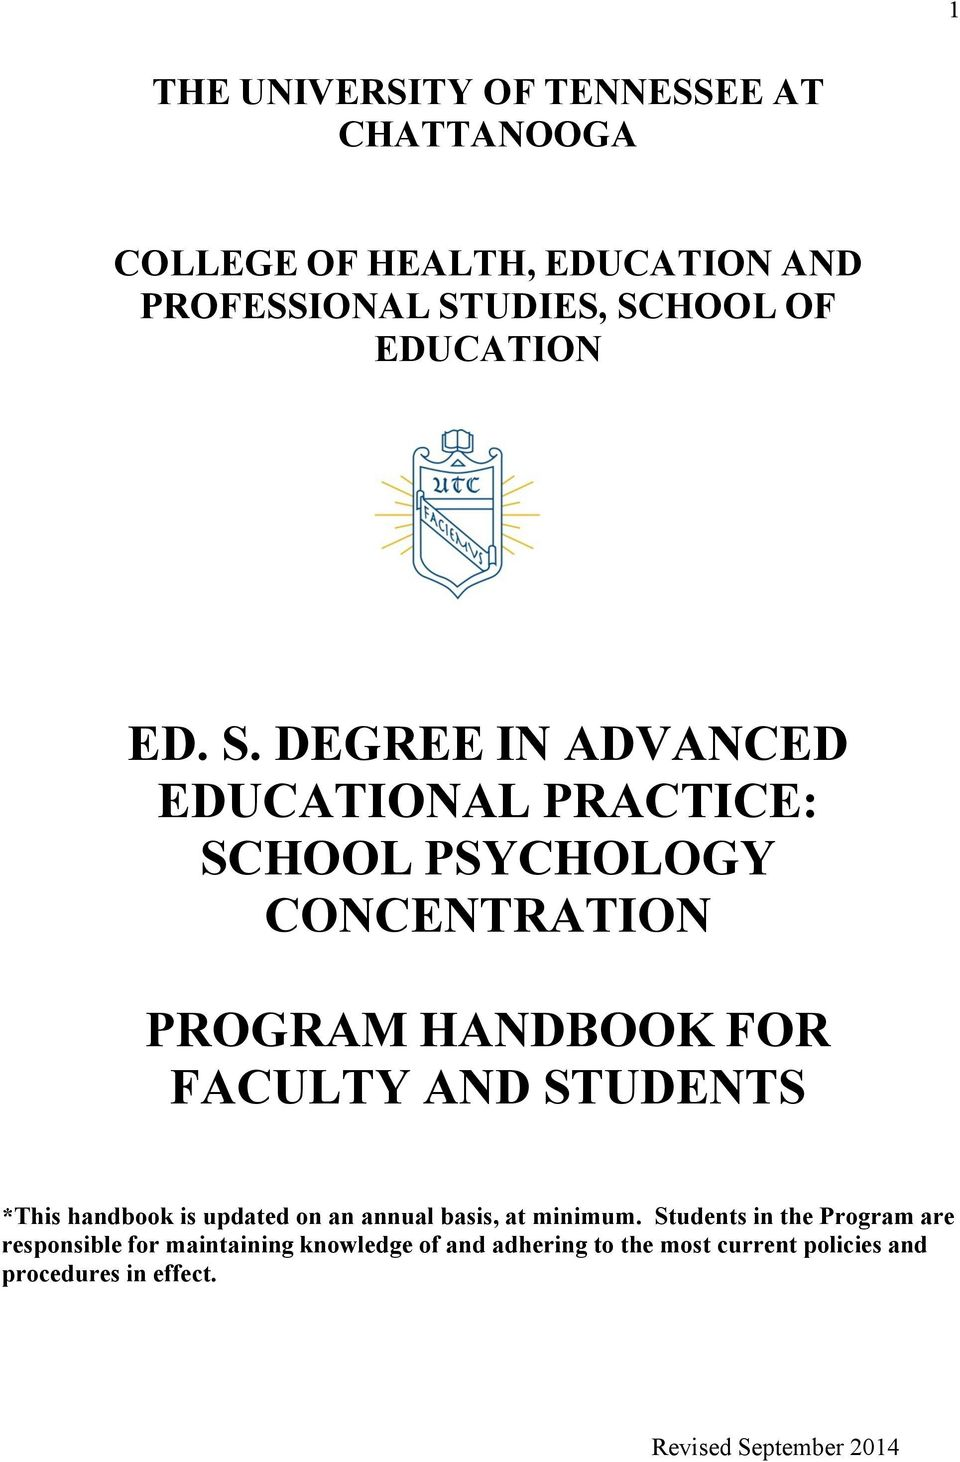 DEGREE IN ADVANCED EDUCATIONAL PRACTICE: SCHOOL PSYCHOLOGY CONCENTRATION PROGRAM HANDBOOK FOR FACULTY AND STUDENTS